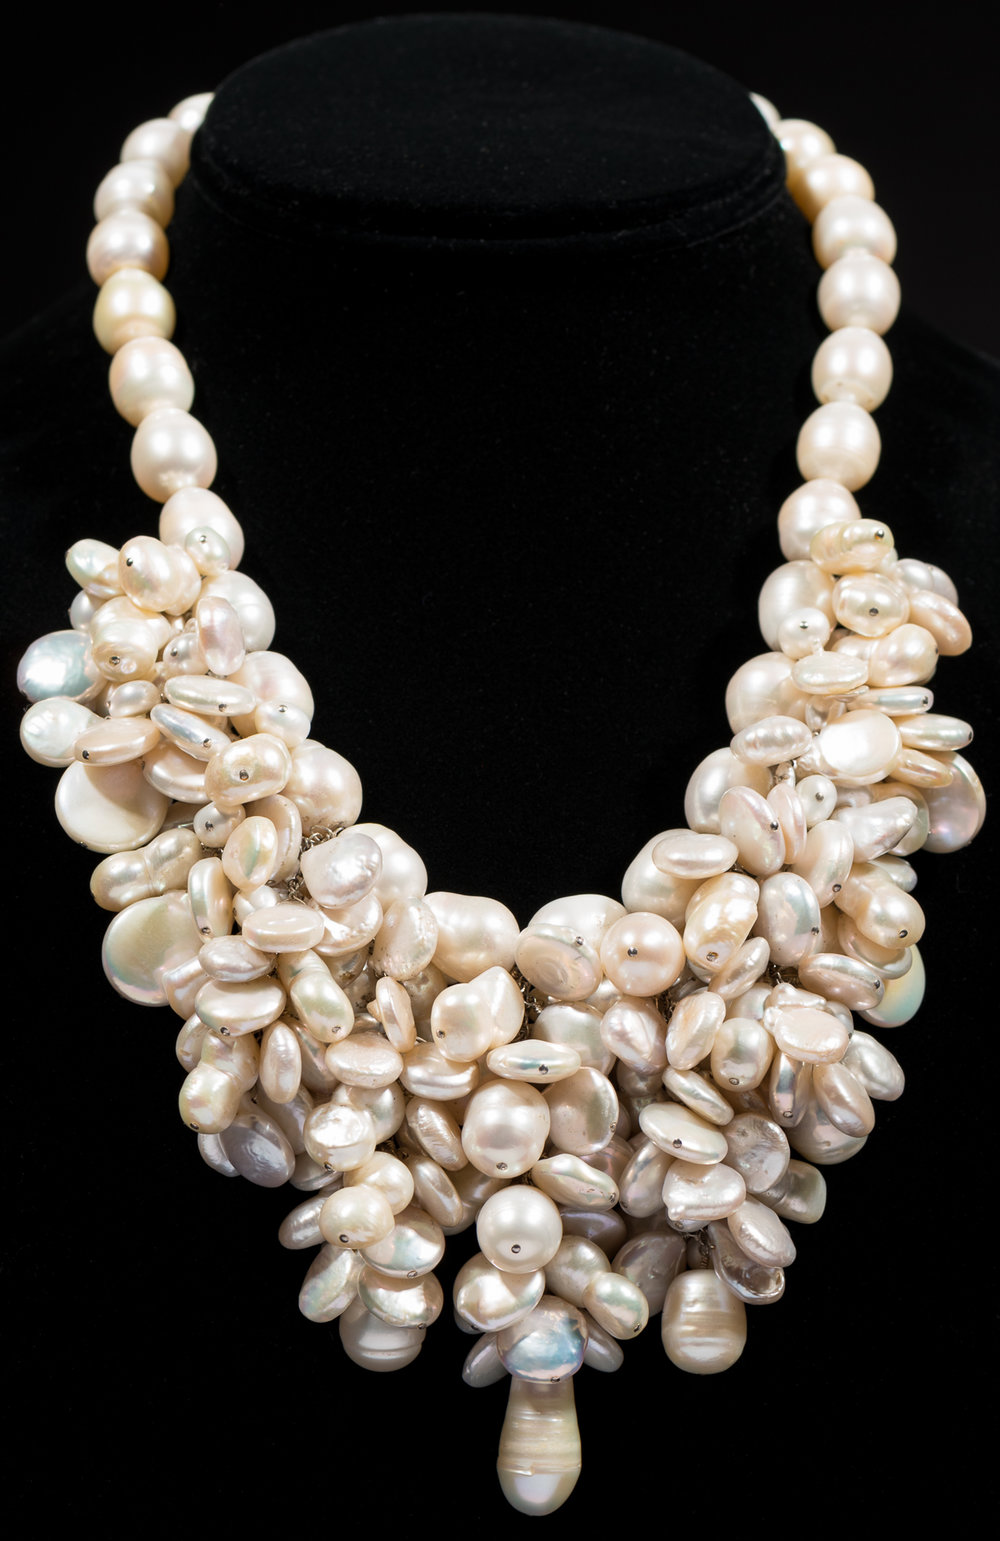 Clustered freshwater pearls with sterling silver